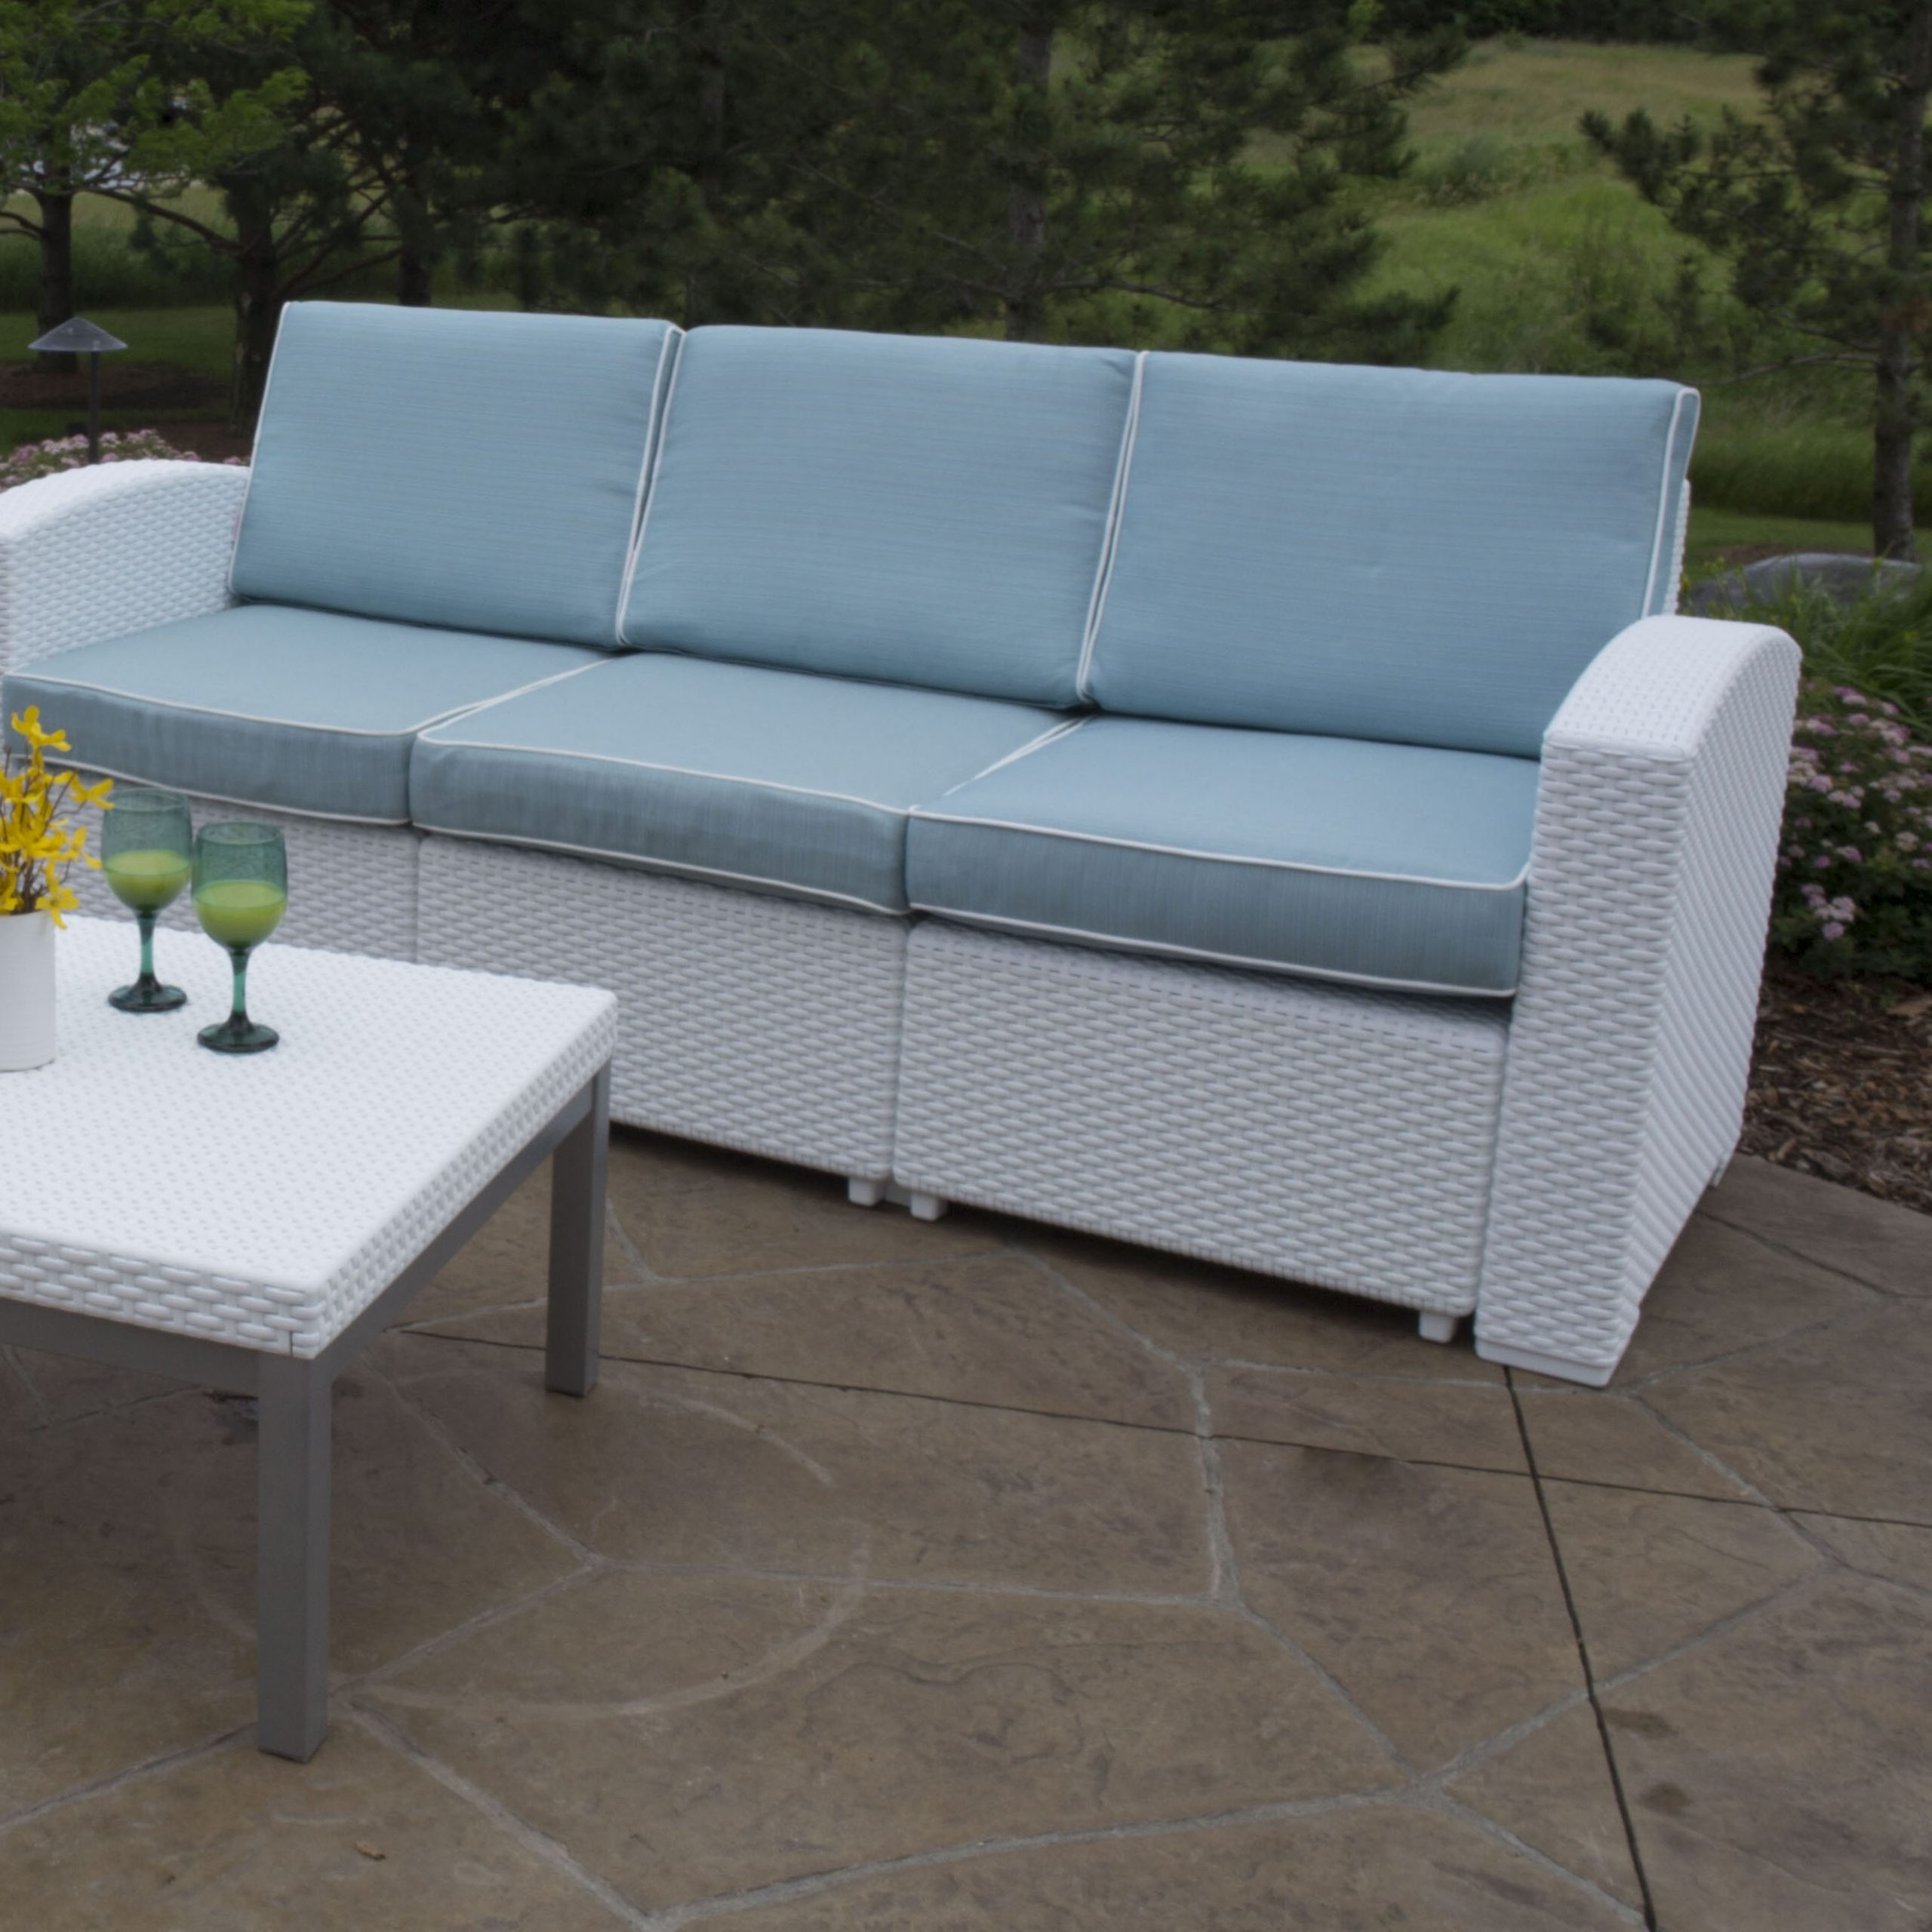 Widely Used Loggins Patio Sofa With Cushions Regarding Menifee Loveseats With Cushions (View 19 of 25)